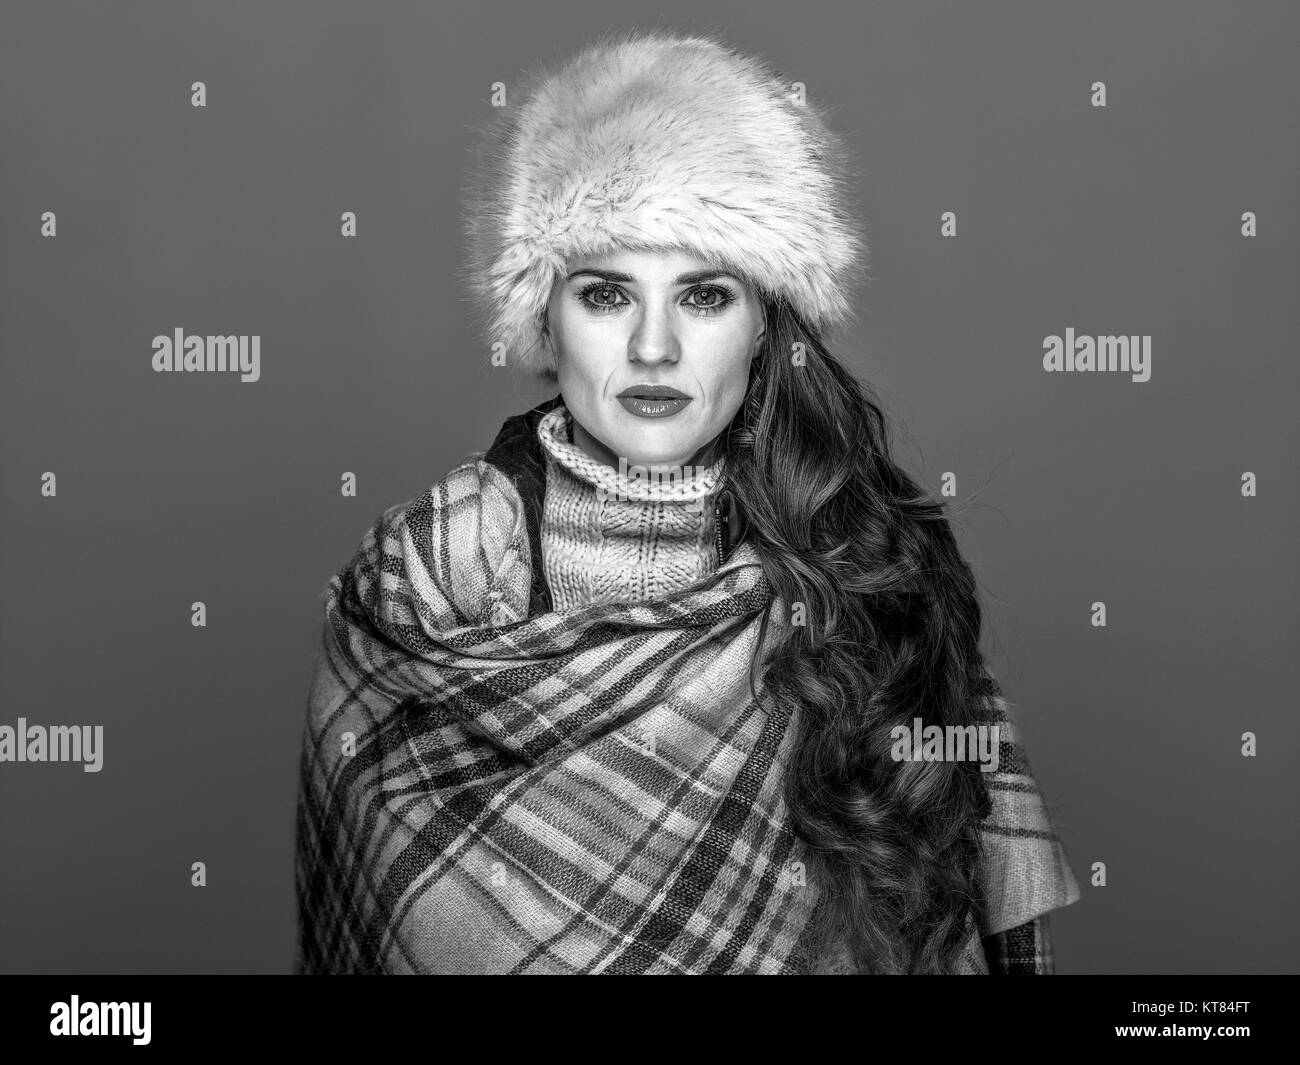 Winter things. Portrait of young elegant woman in fur hat isolated on cold blue background - Stock Image